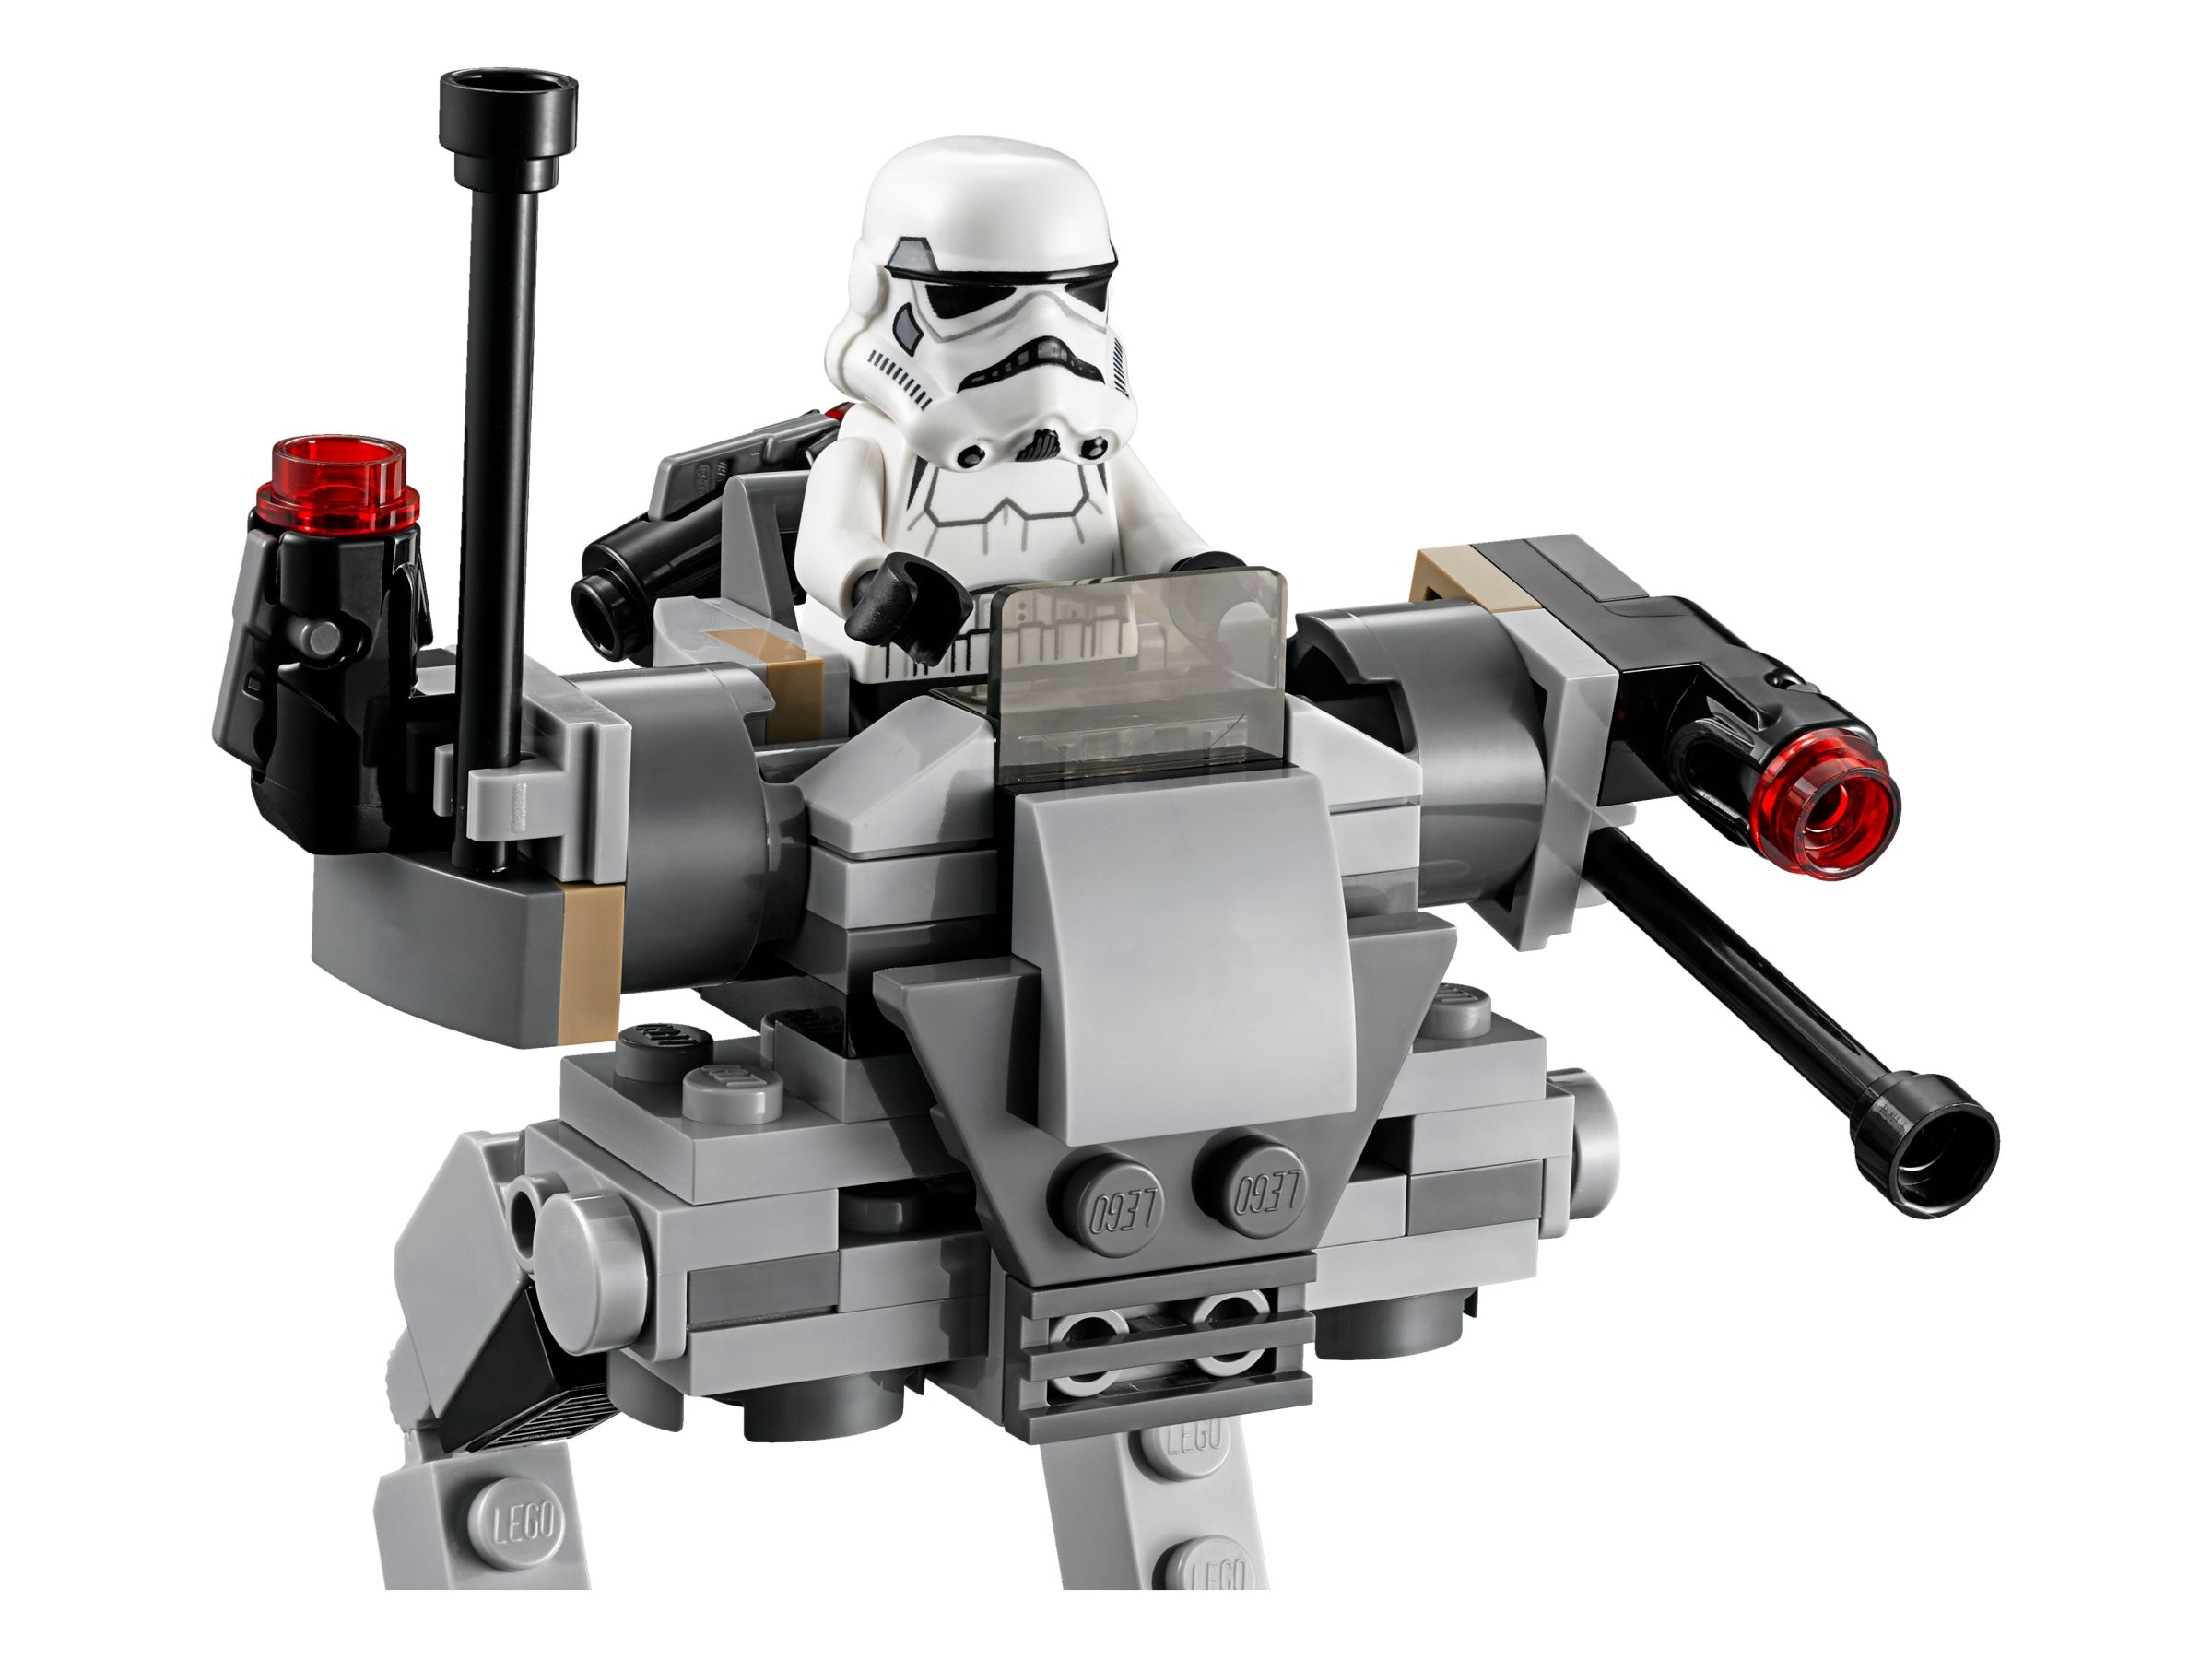 LEGO Star Wars 75165 Imperial Trooper Battle Pack LEGO_75165_alt3.jpg